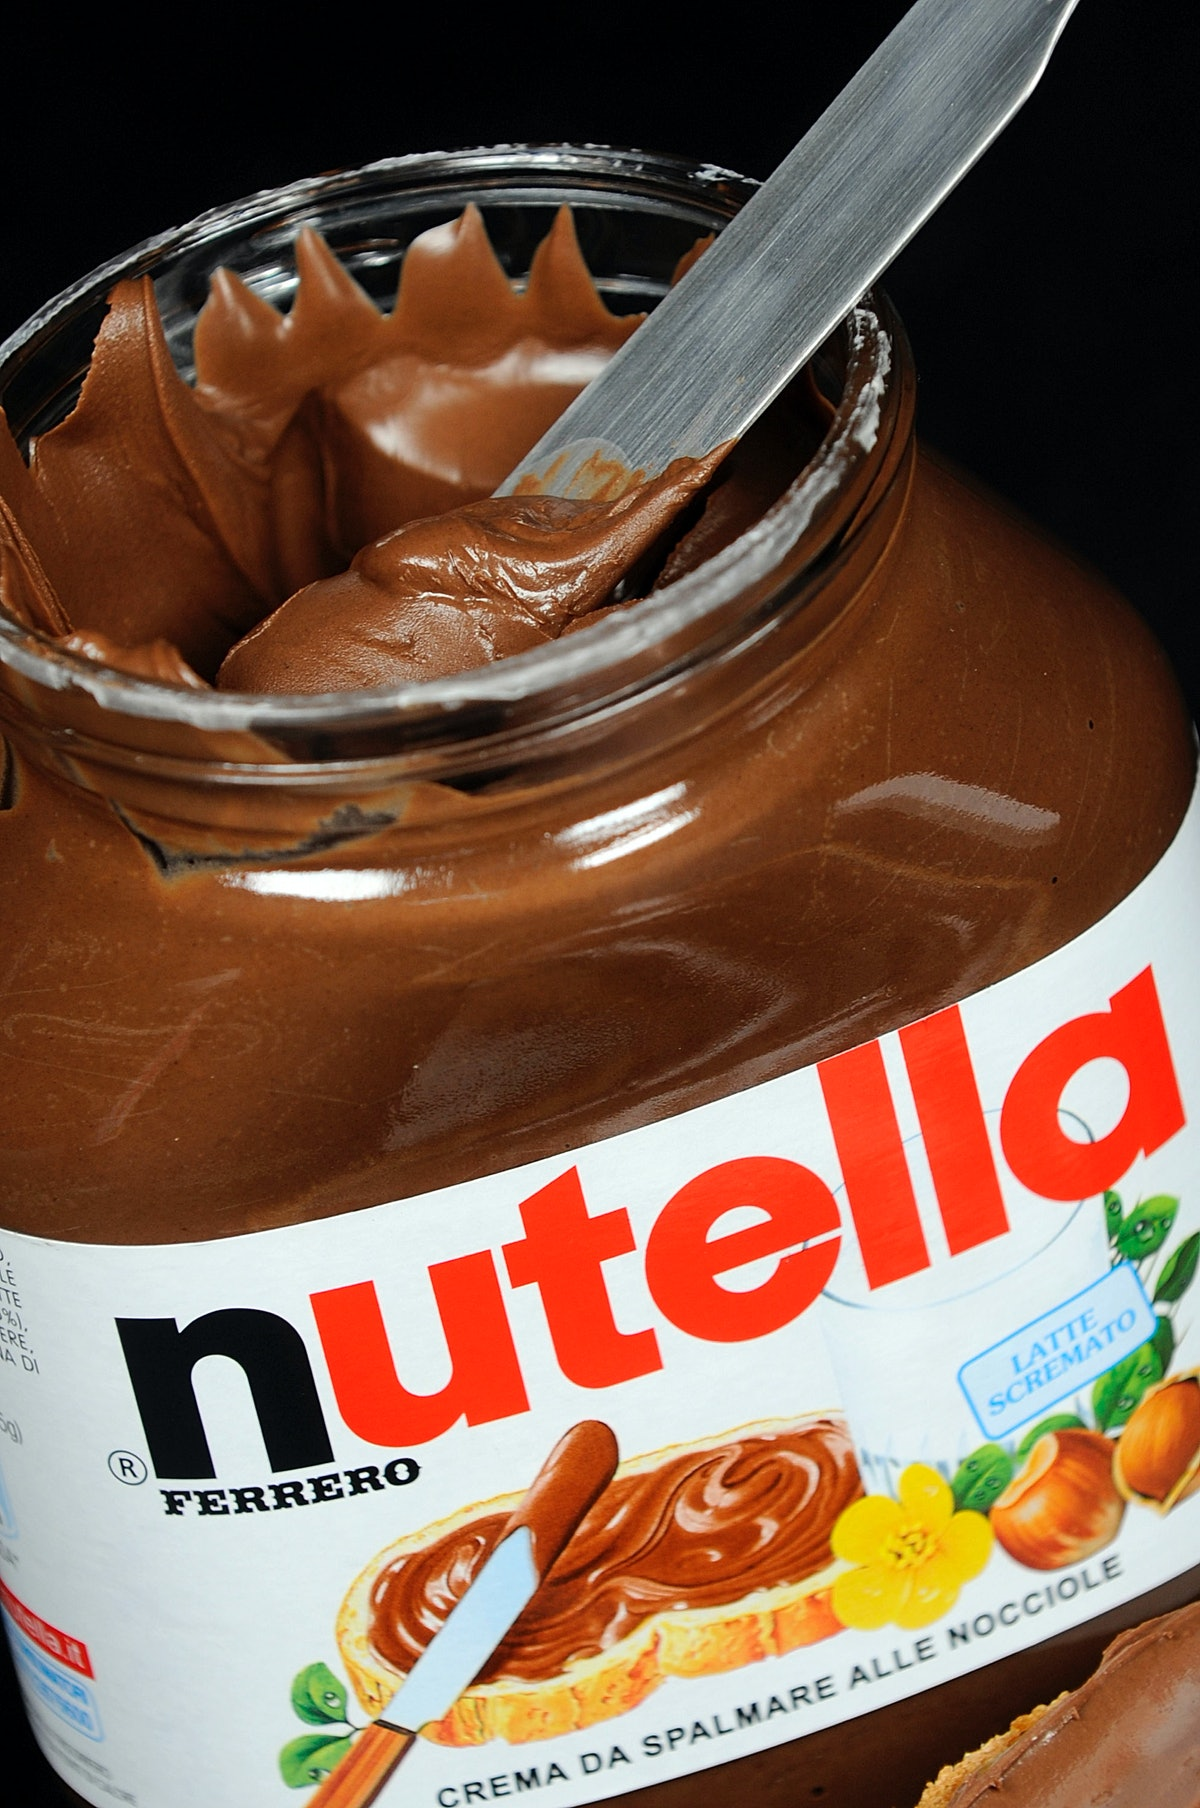 The World Nutella Day 2020 Sweepstakes include a wine experience, cooking class, and tour of the Nutella factory.